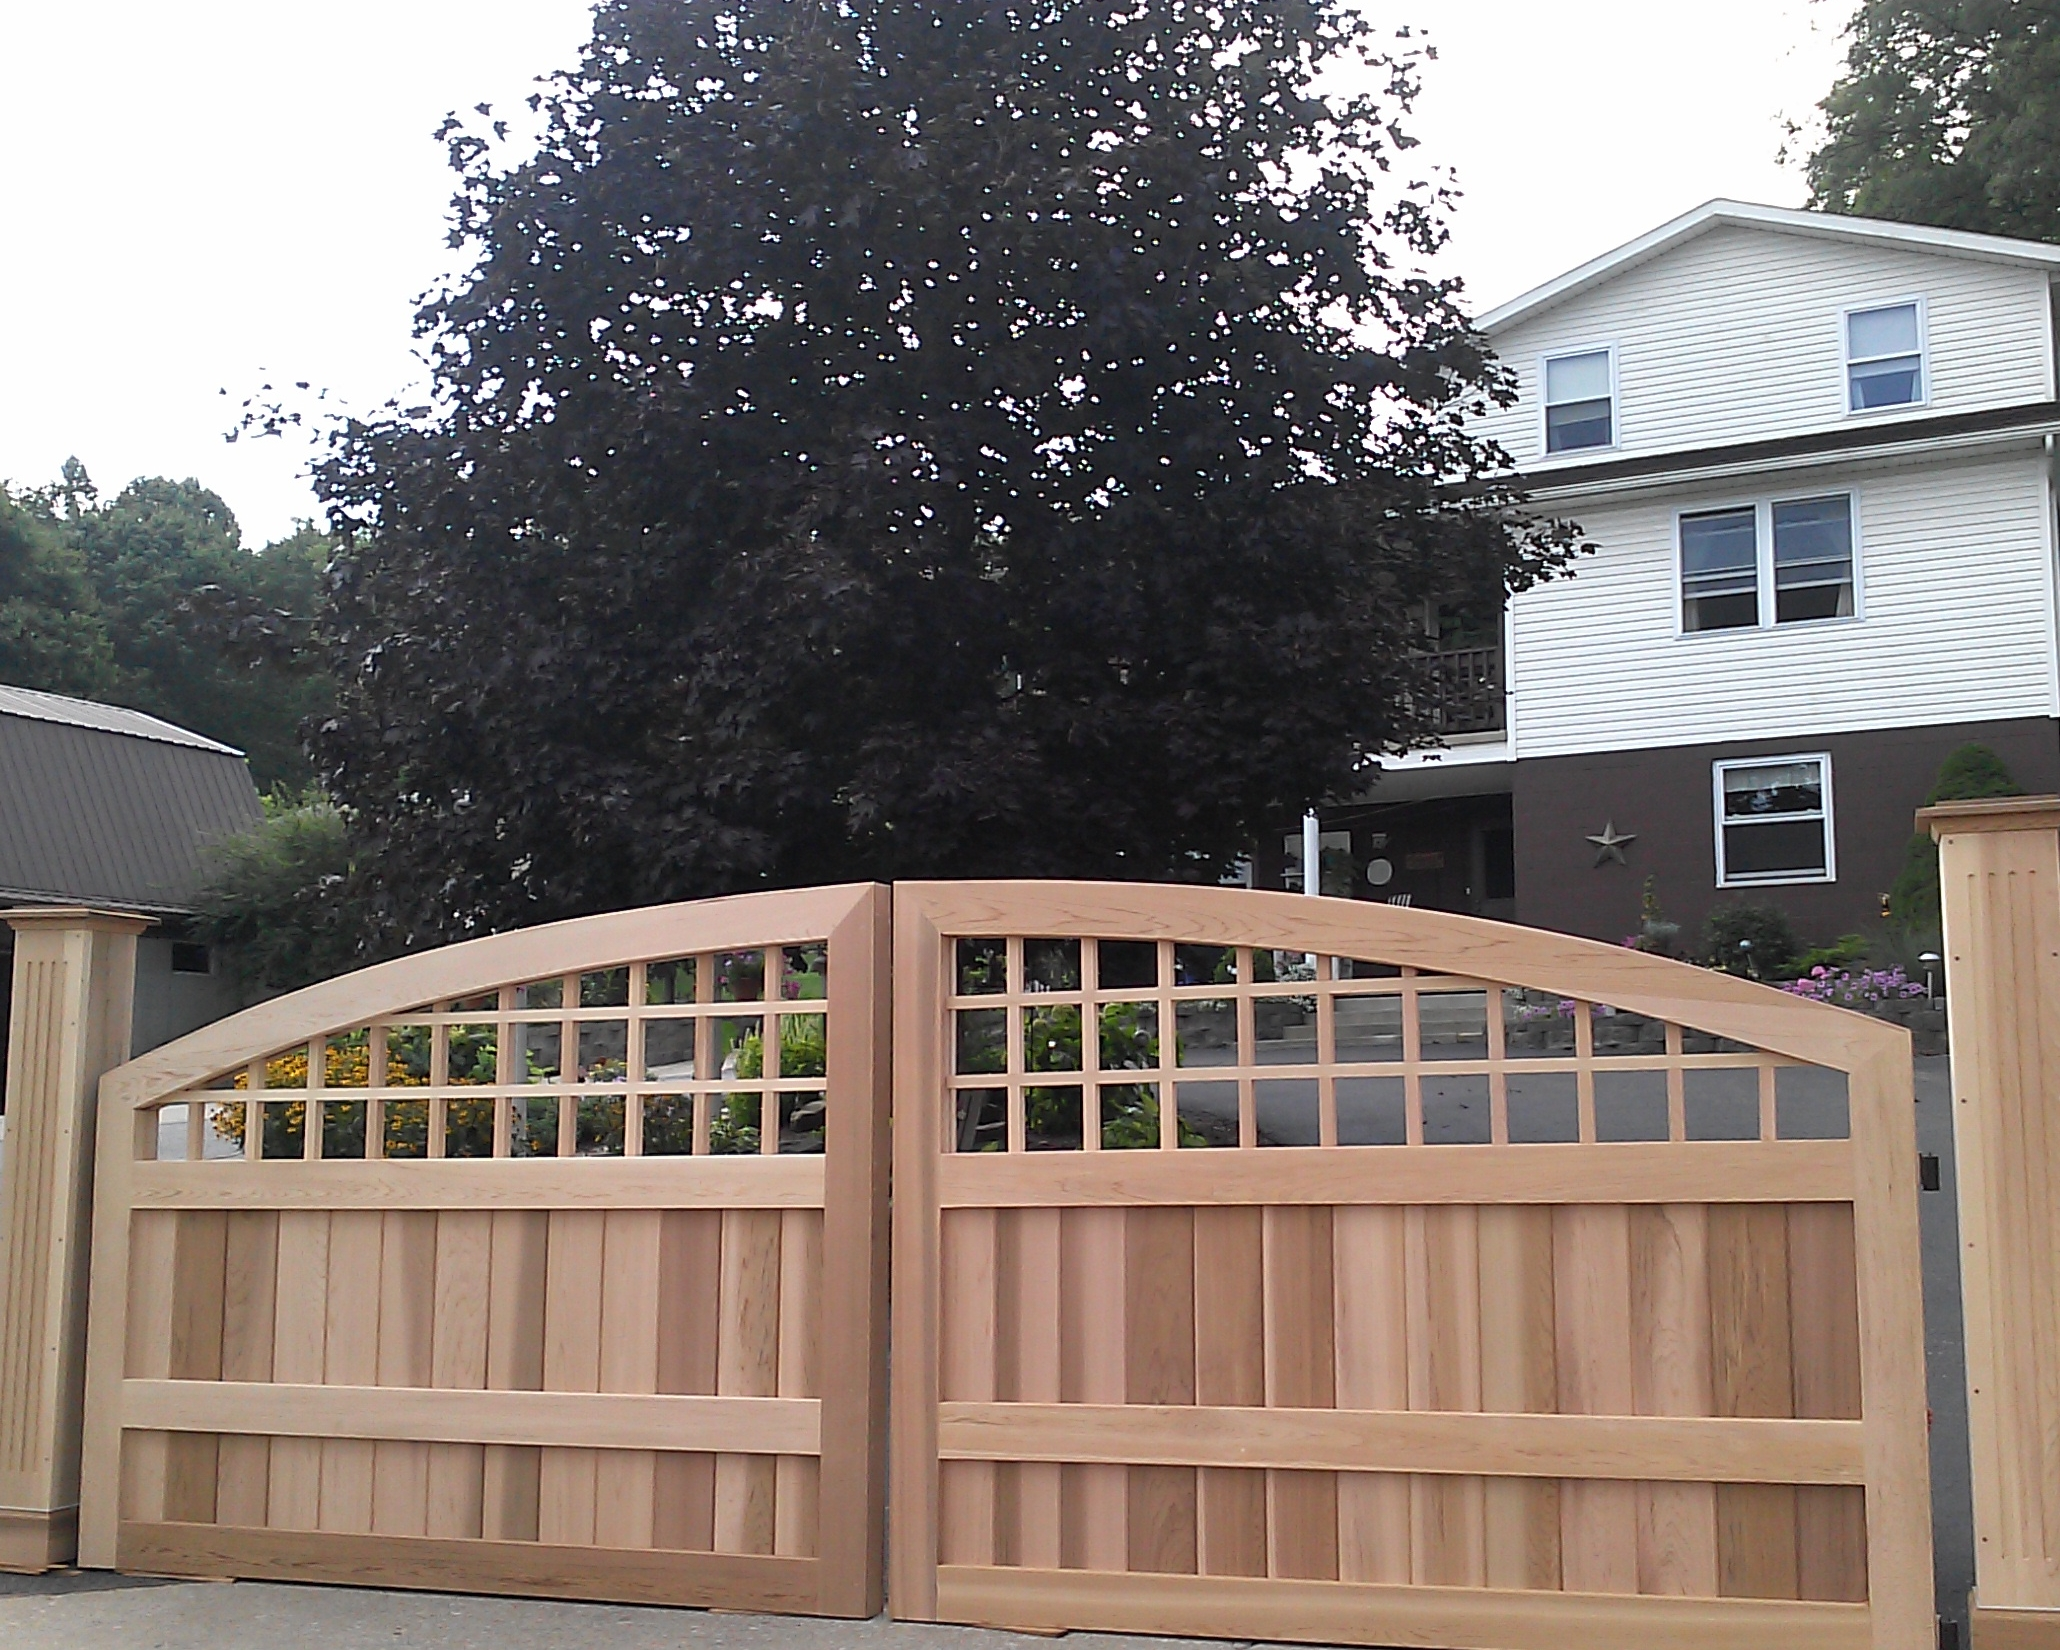 The Most Popular Driveway Gate of 2013